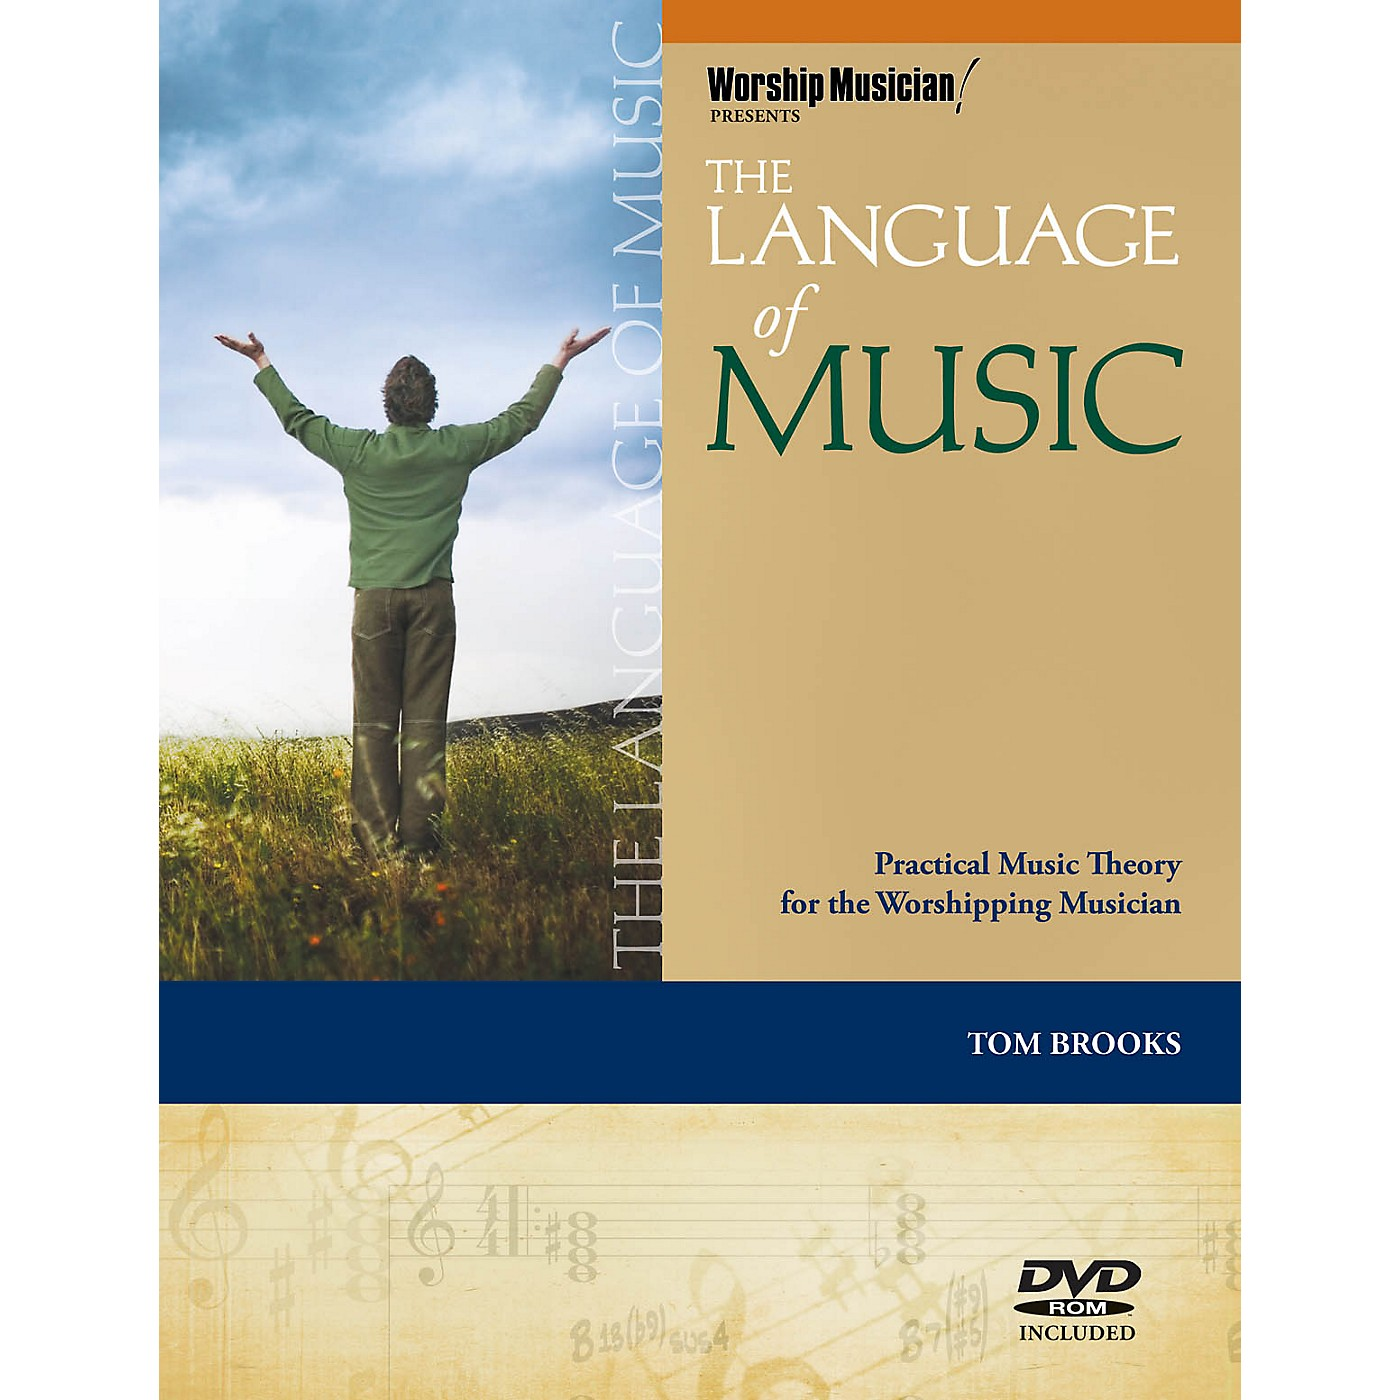 Hal Leonard The Language of Music Worship Musician Presents Series Softcover with DVD-ROM Written by Tom Brooks thumbnail